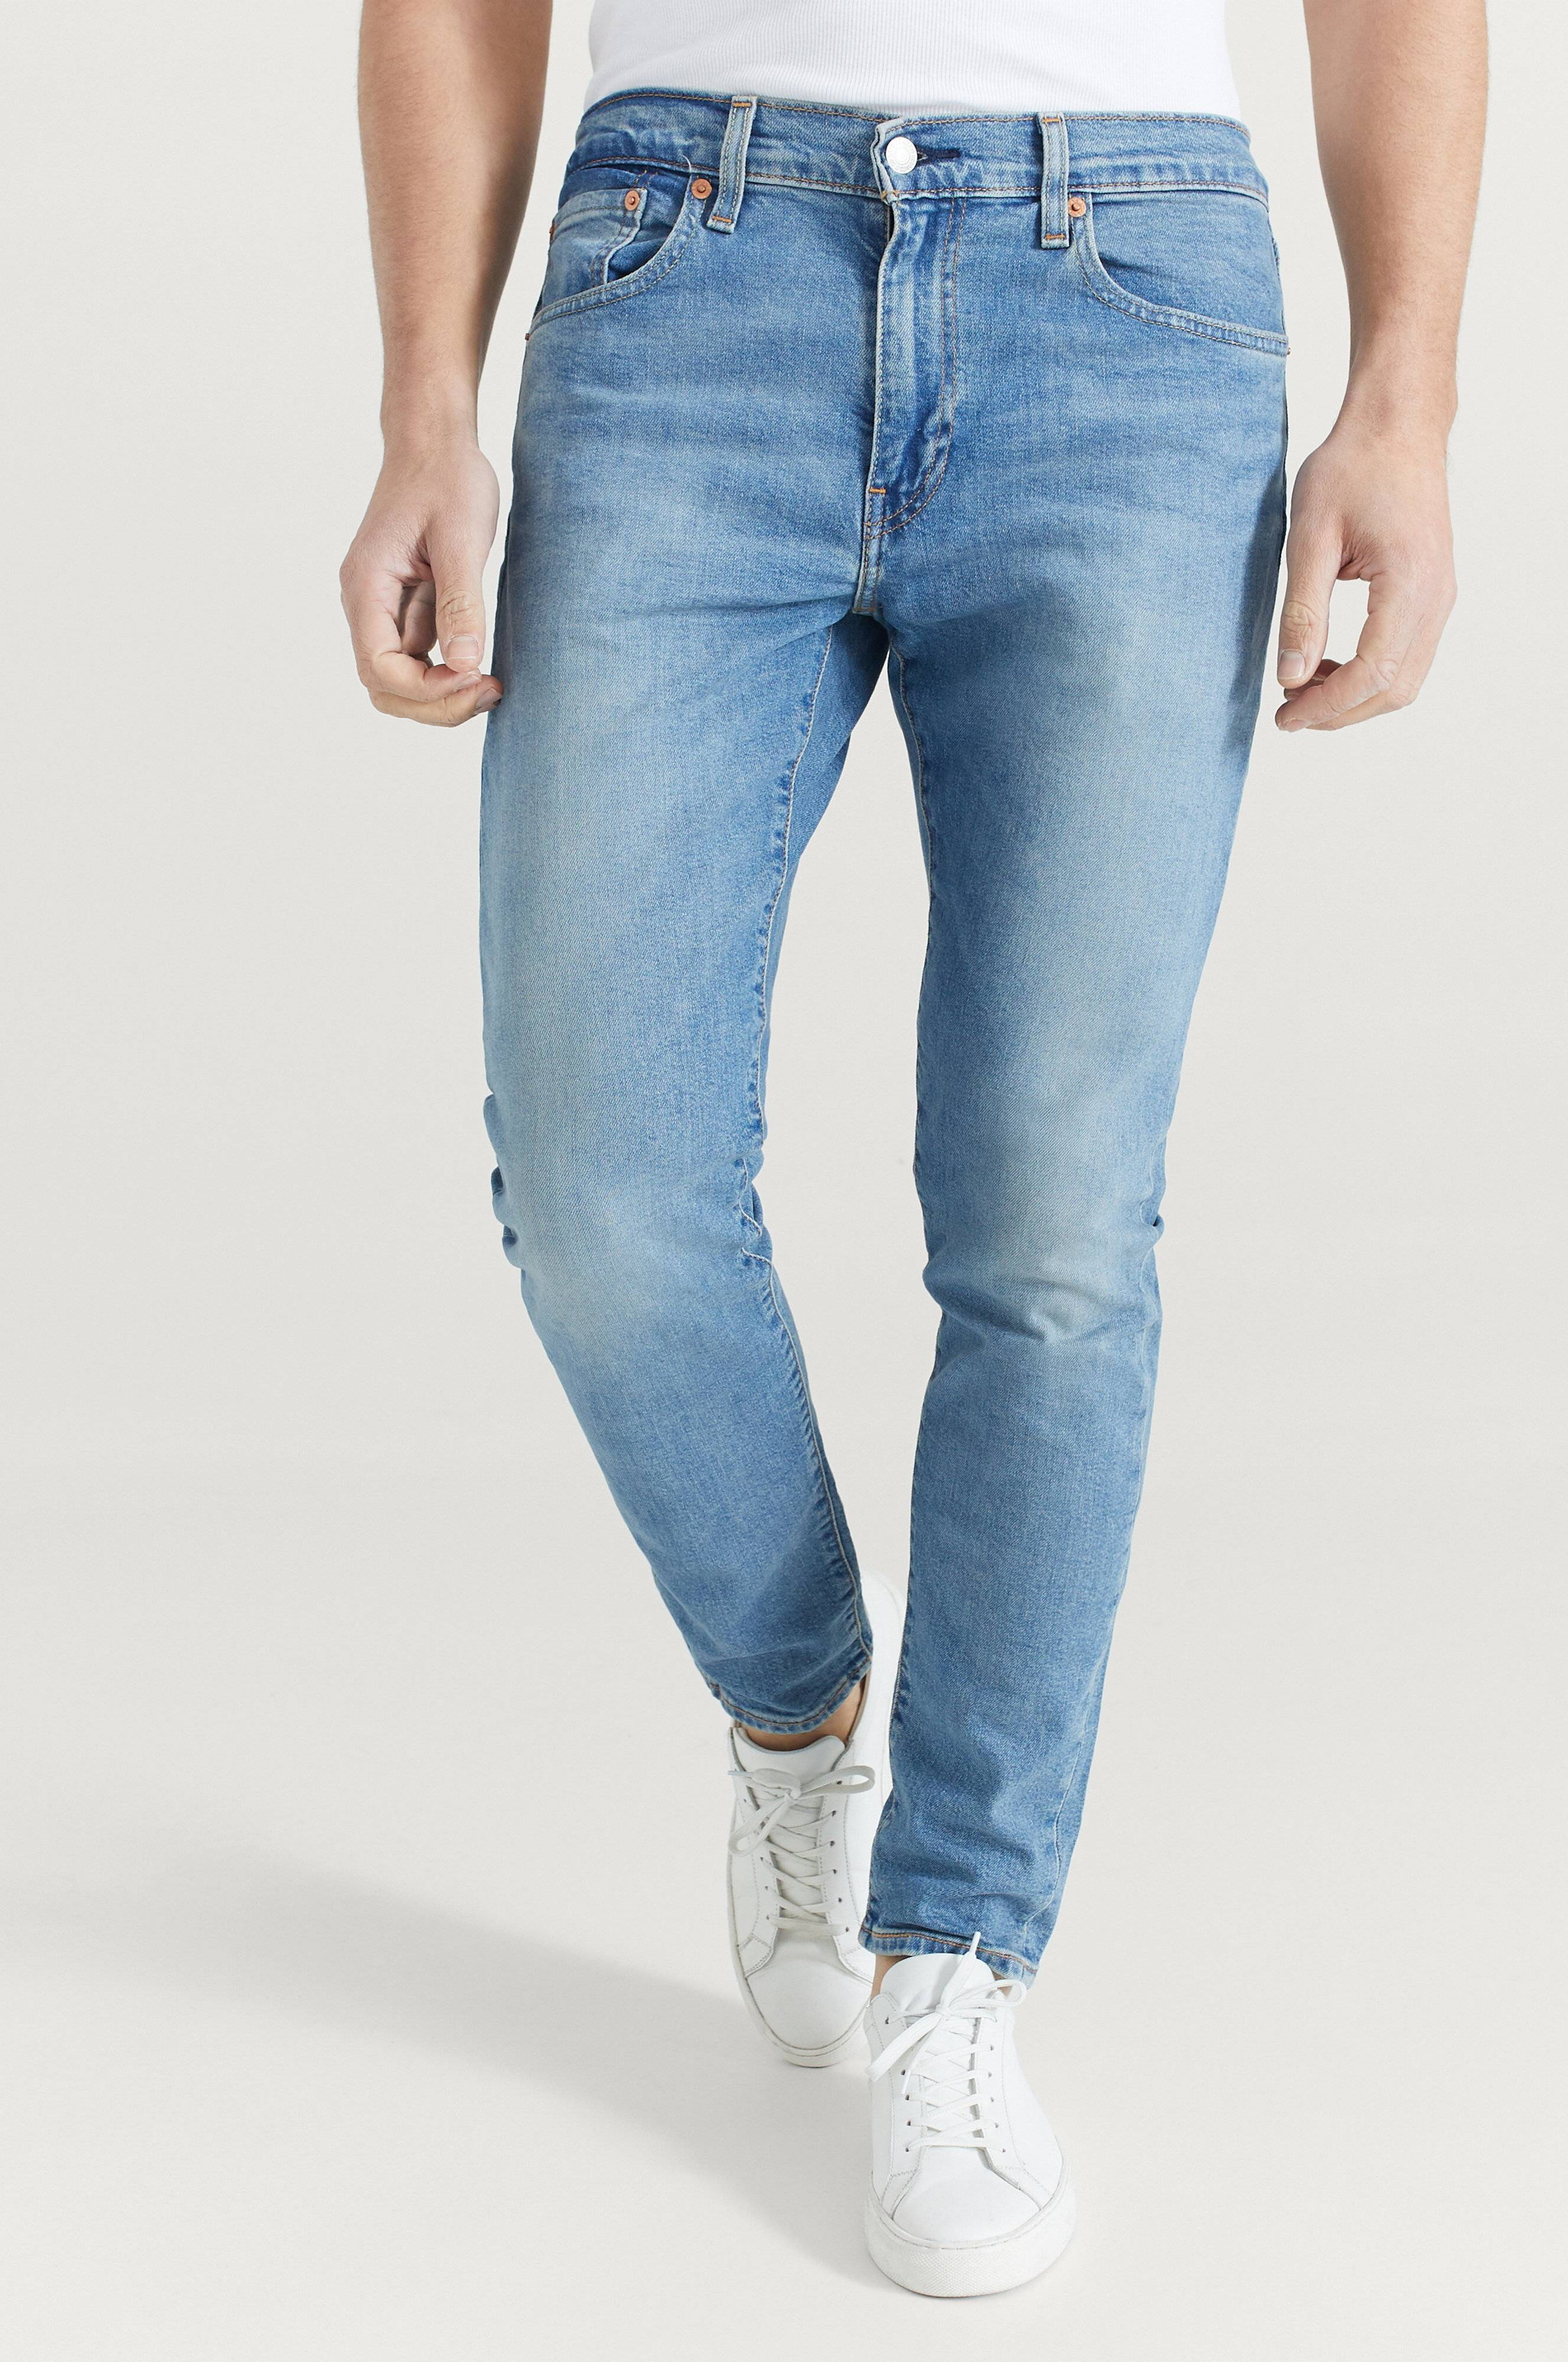 BARSTOW WESTERN jeans 512